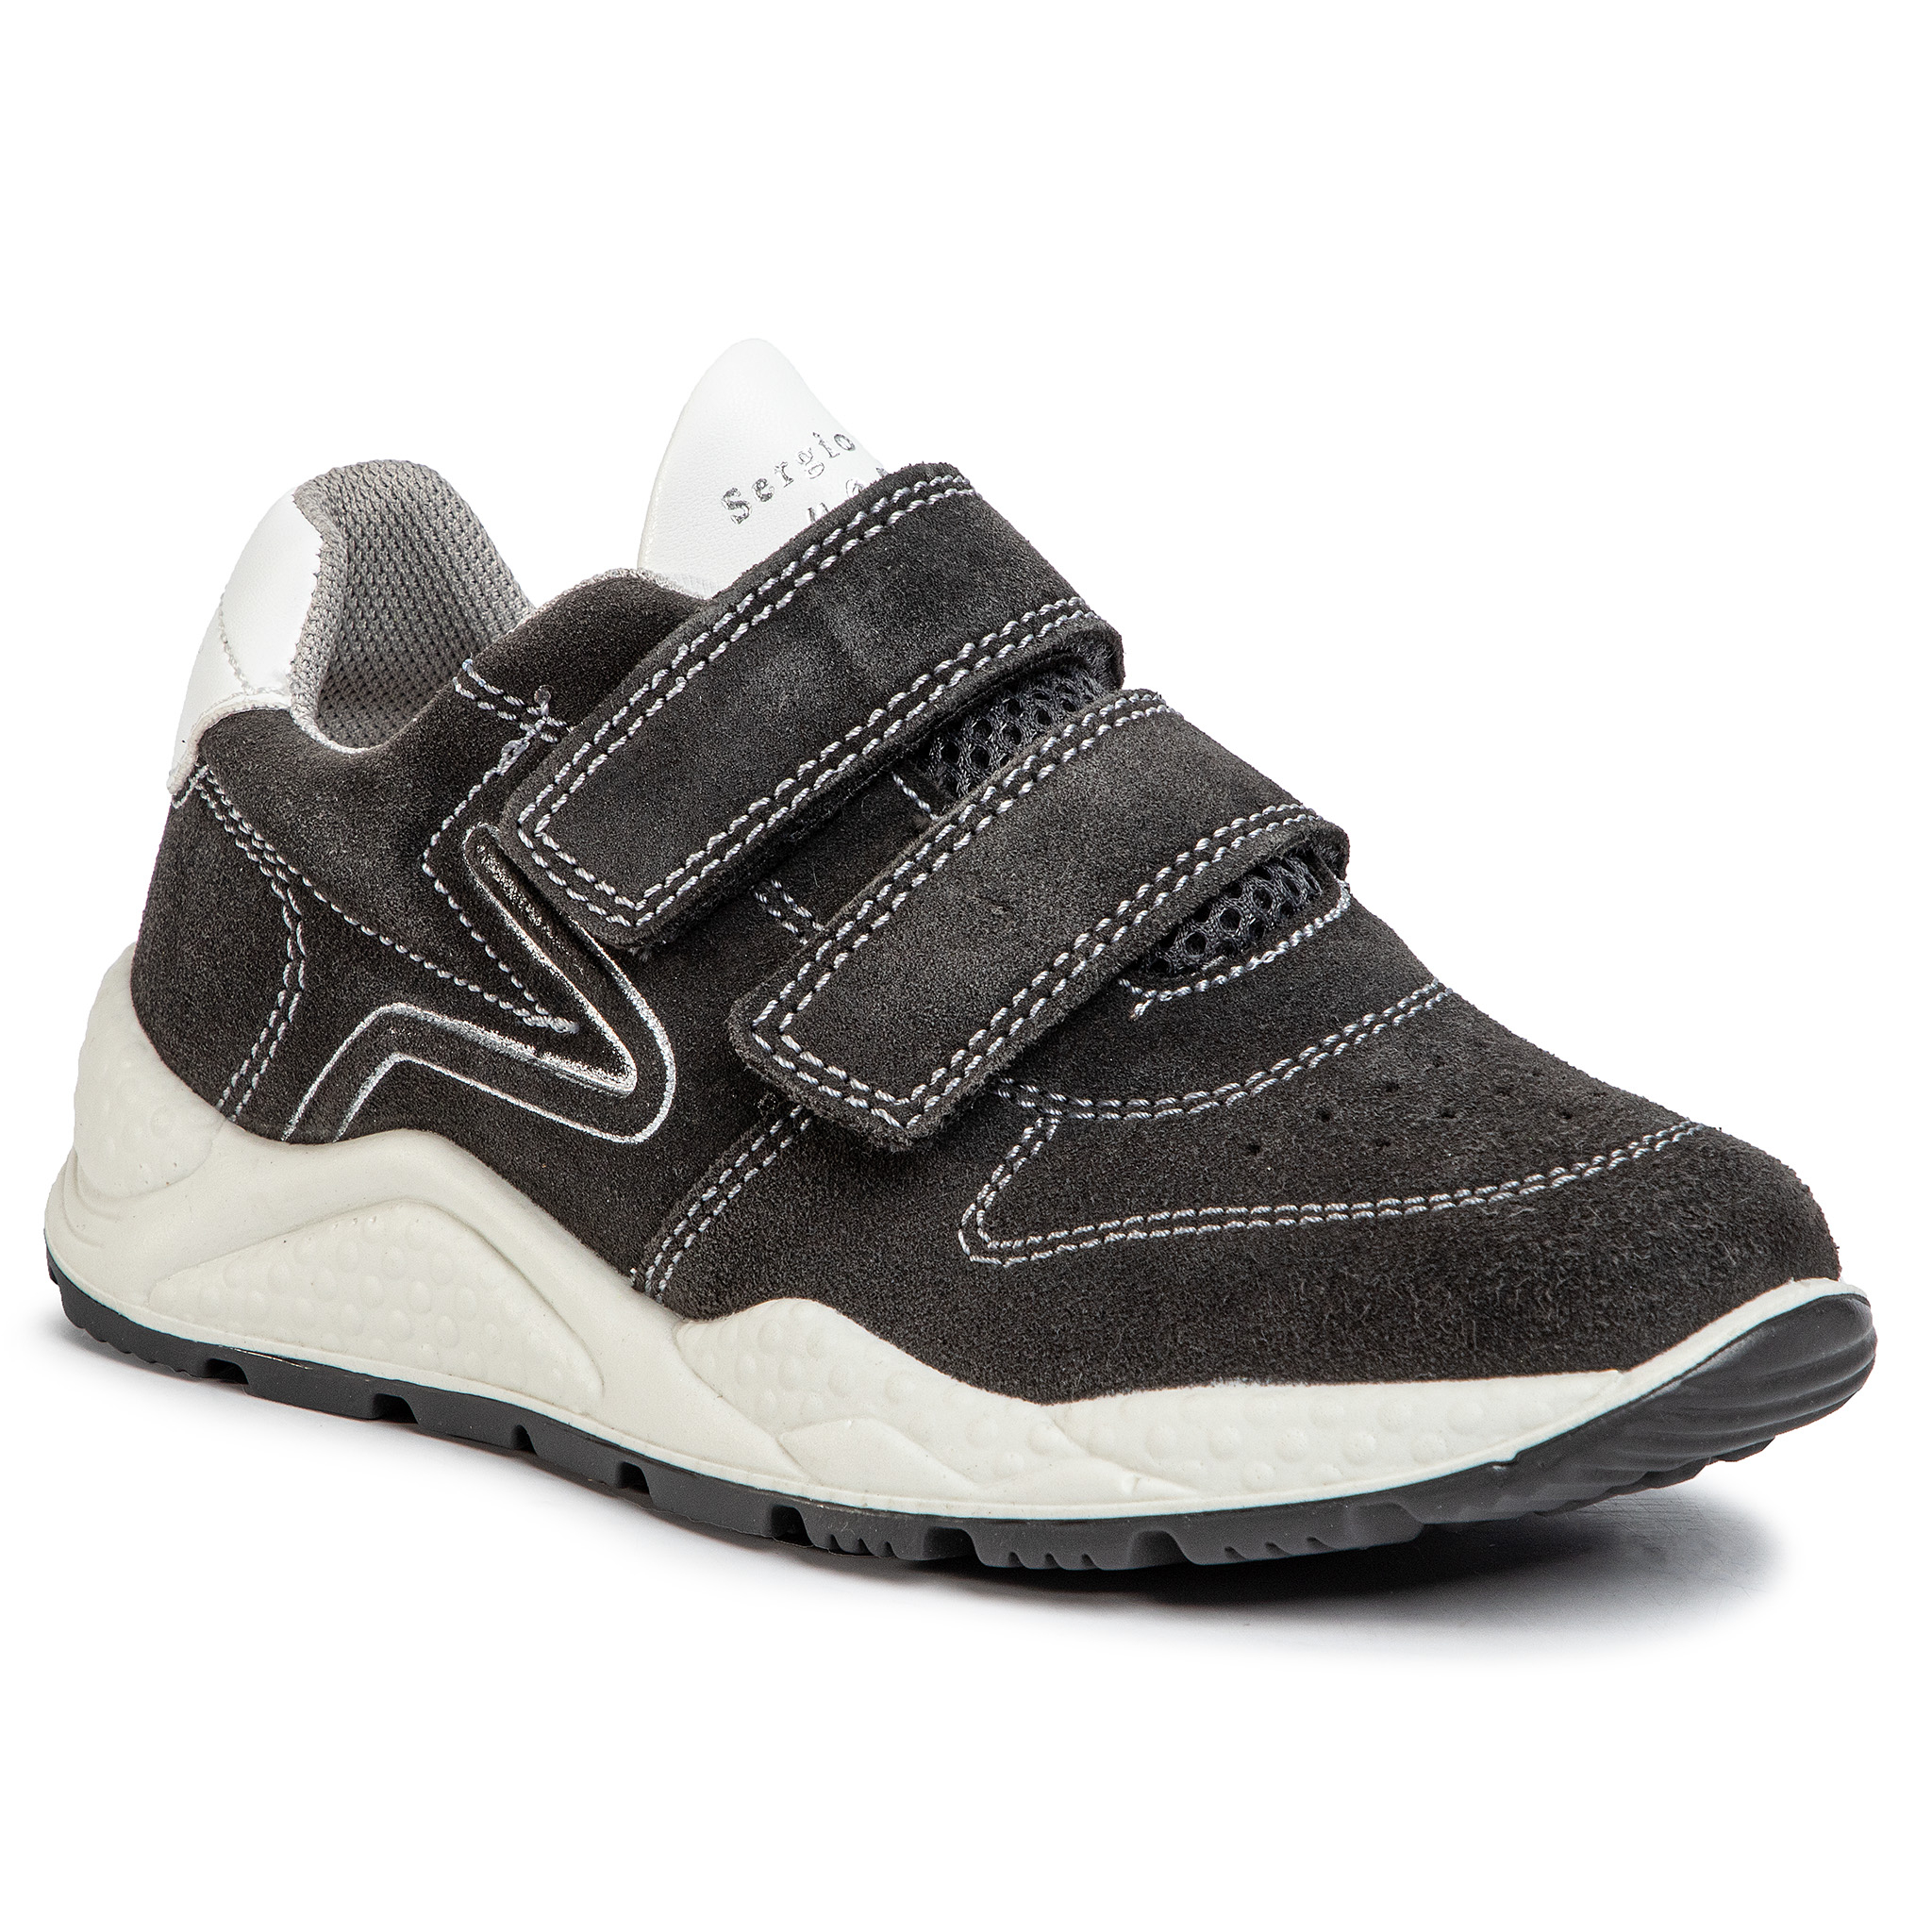 Sneakers SERGIO BARDI YOUNG - SBY-02-03-000047 266